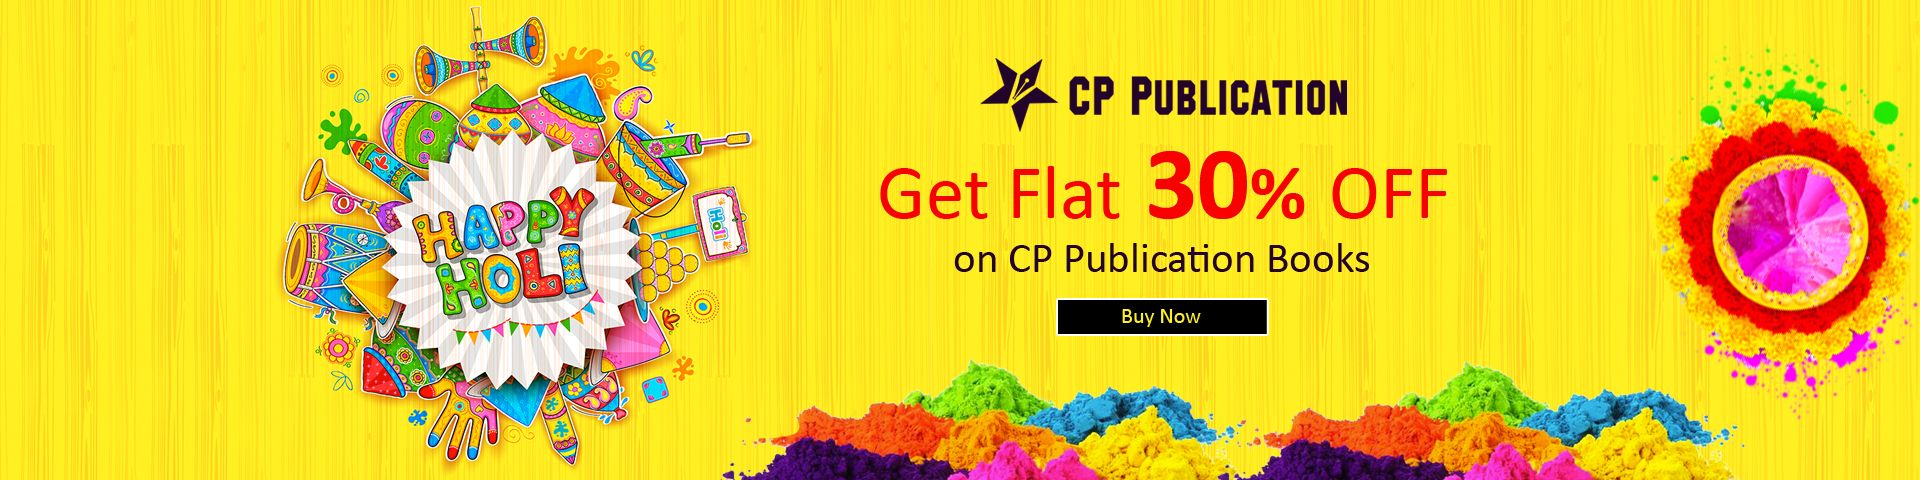 Holi Offer 2019 CPP